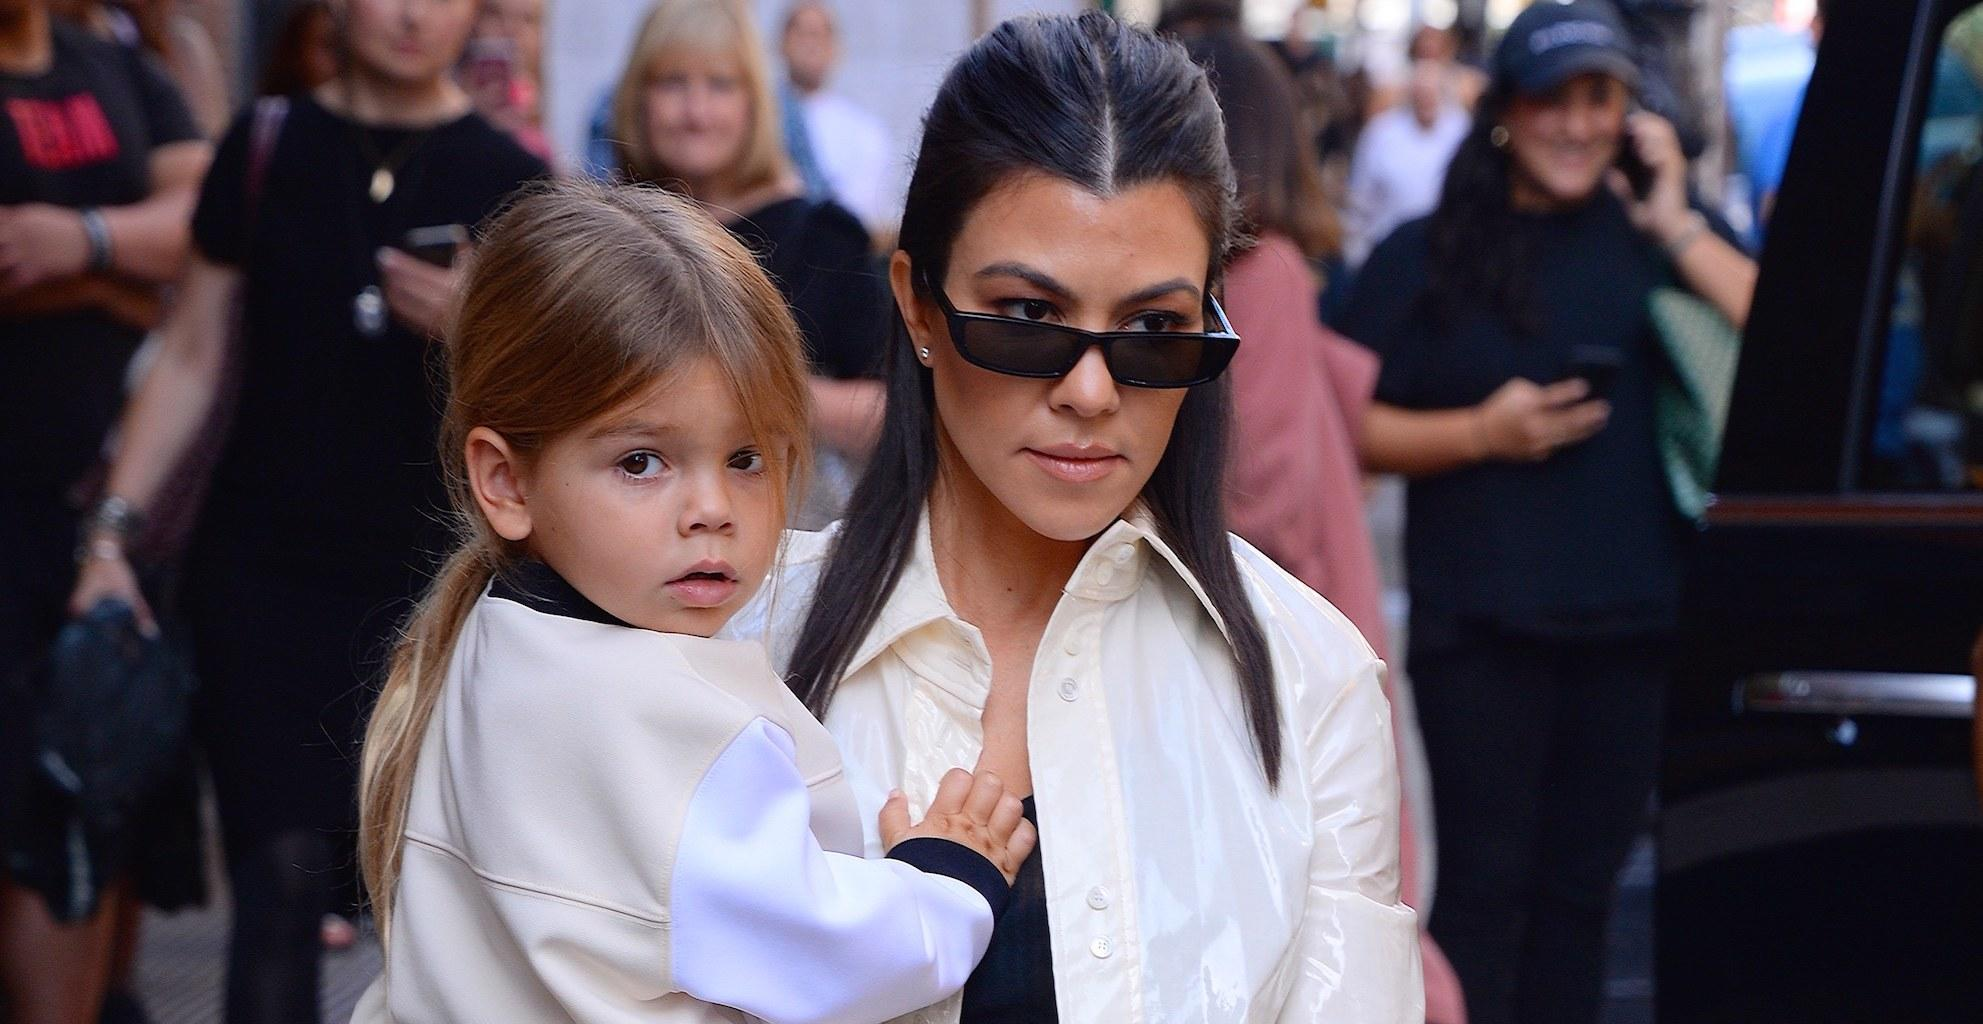 KUWK: Kourtney Kardashian Responds To People Outraged She Supposedly Banned Candy At Her Kids' Candy-Land Themed Party!